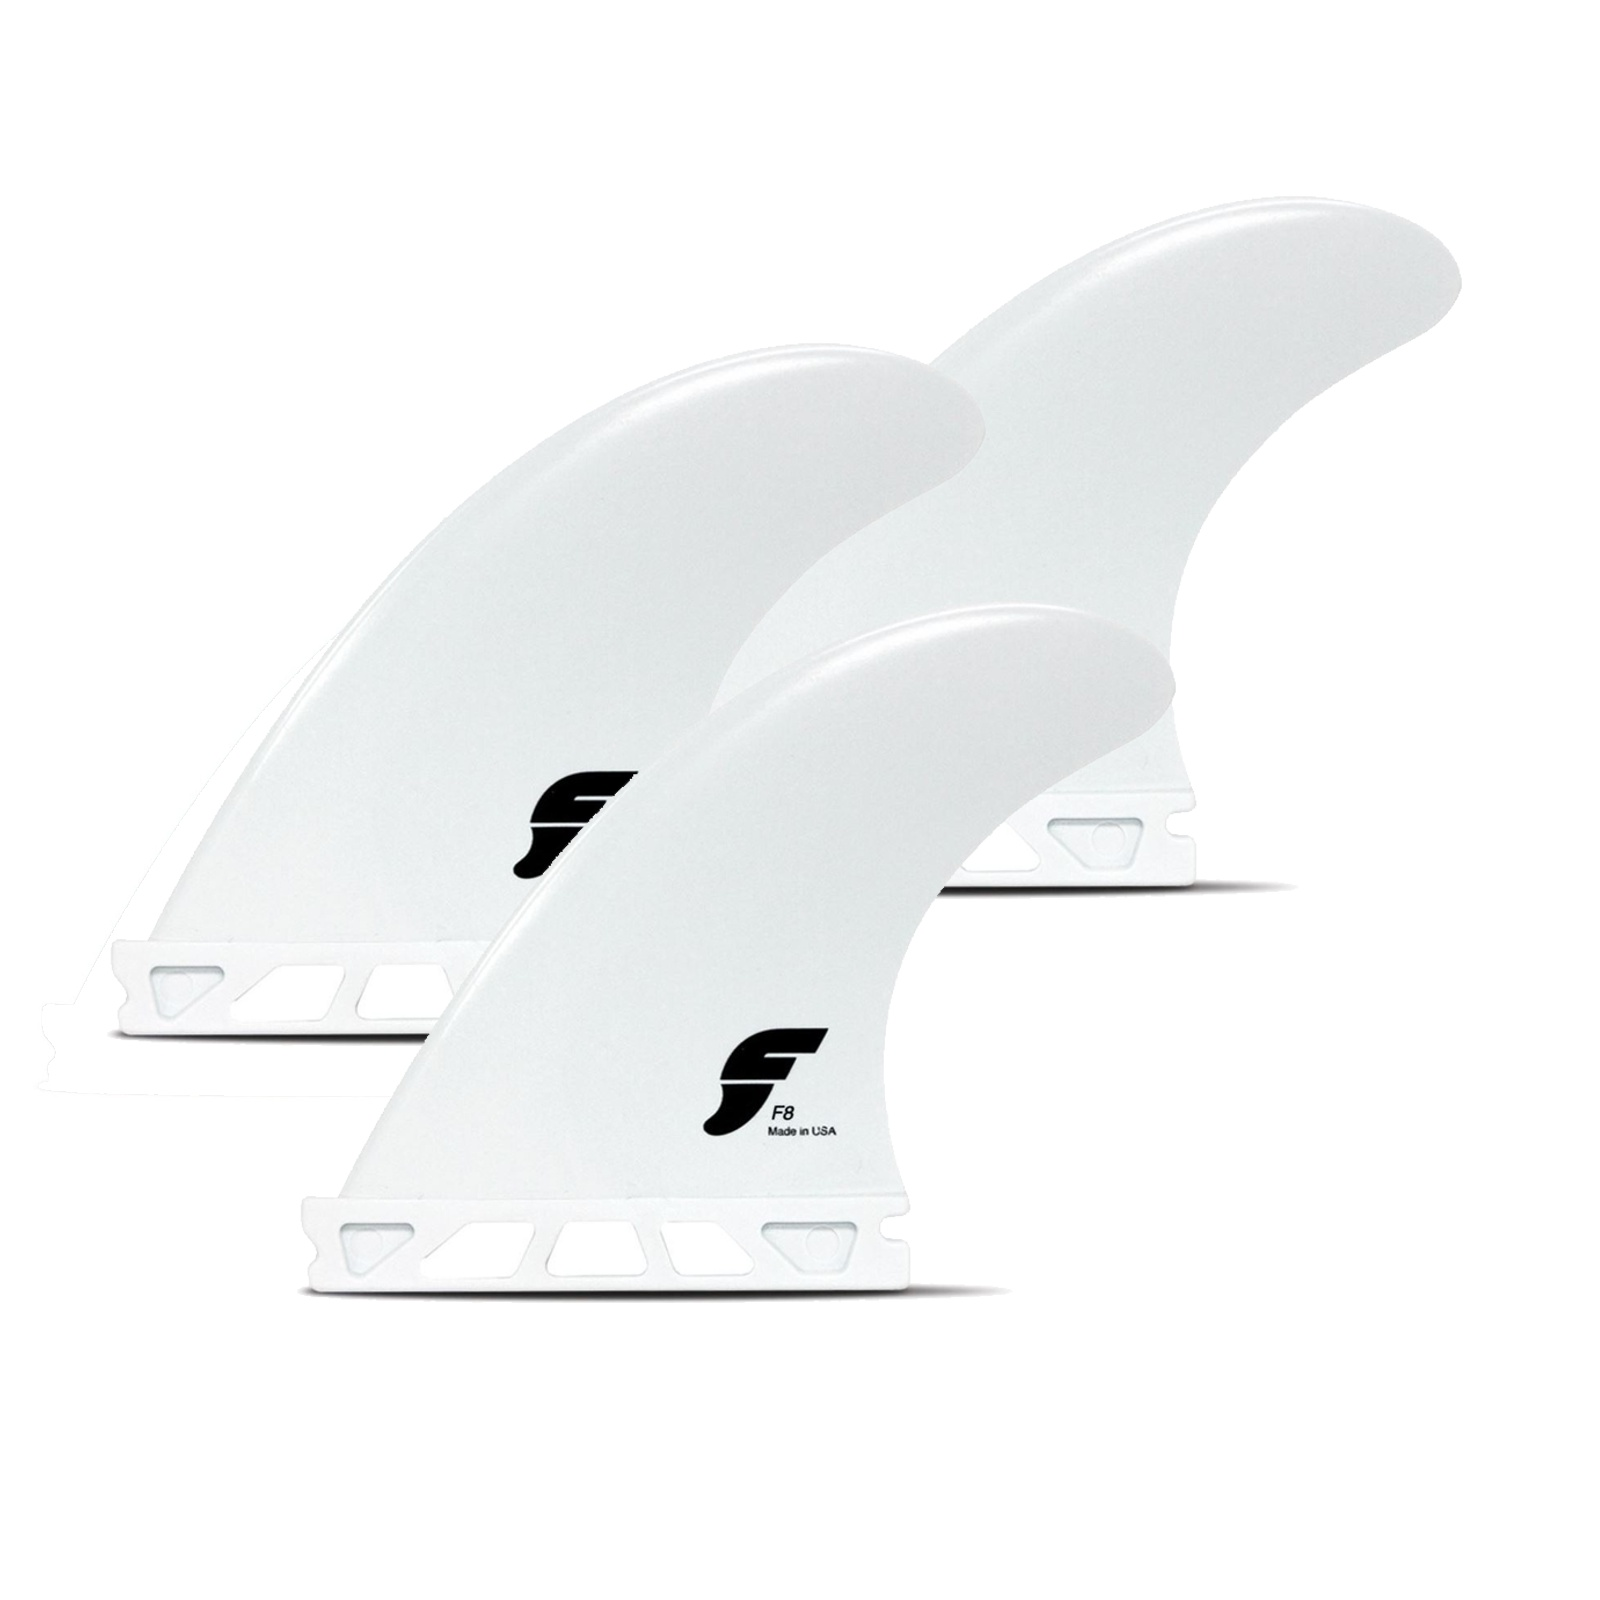 FUTURES Manufacturer 3 Fin Set F8 Thermotech